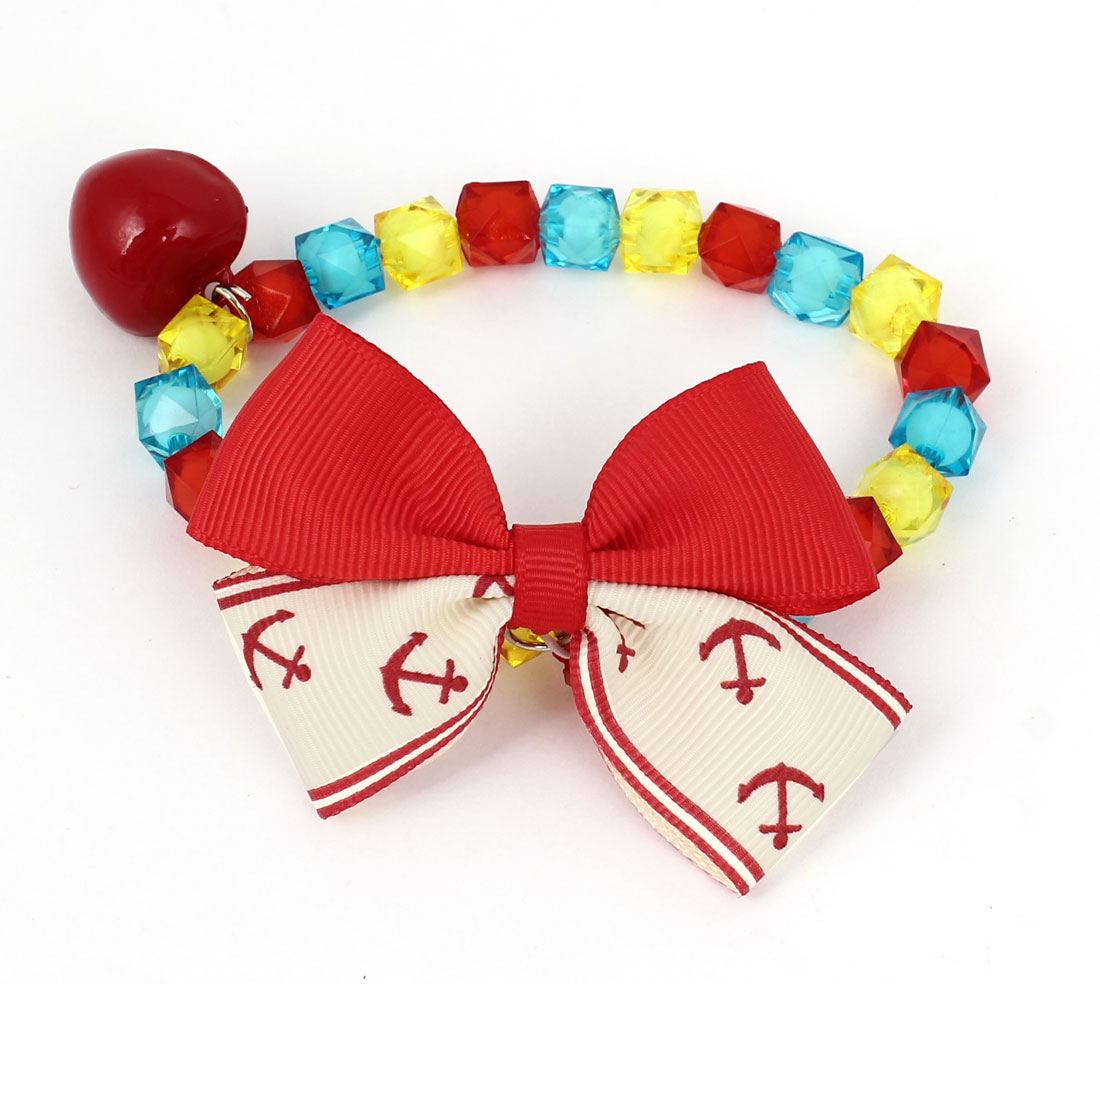 Metal Bell Pendant Bowtie Accent Pet Dog Plastic Faceted Beads Collar Necklace Assorted Color XS